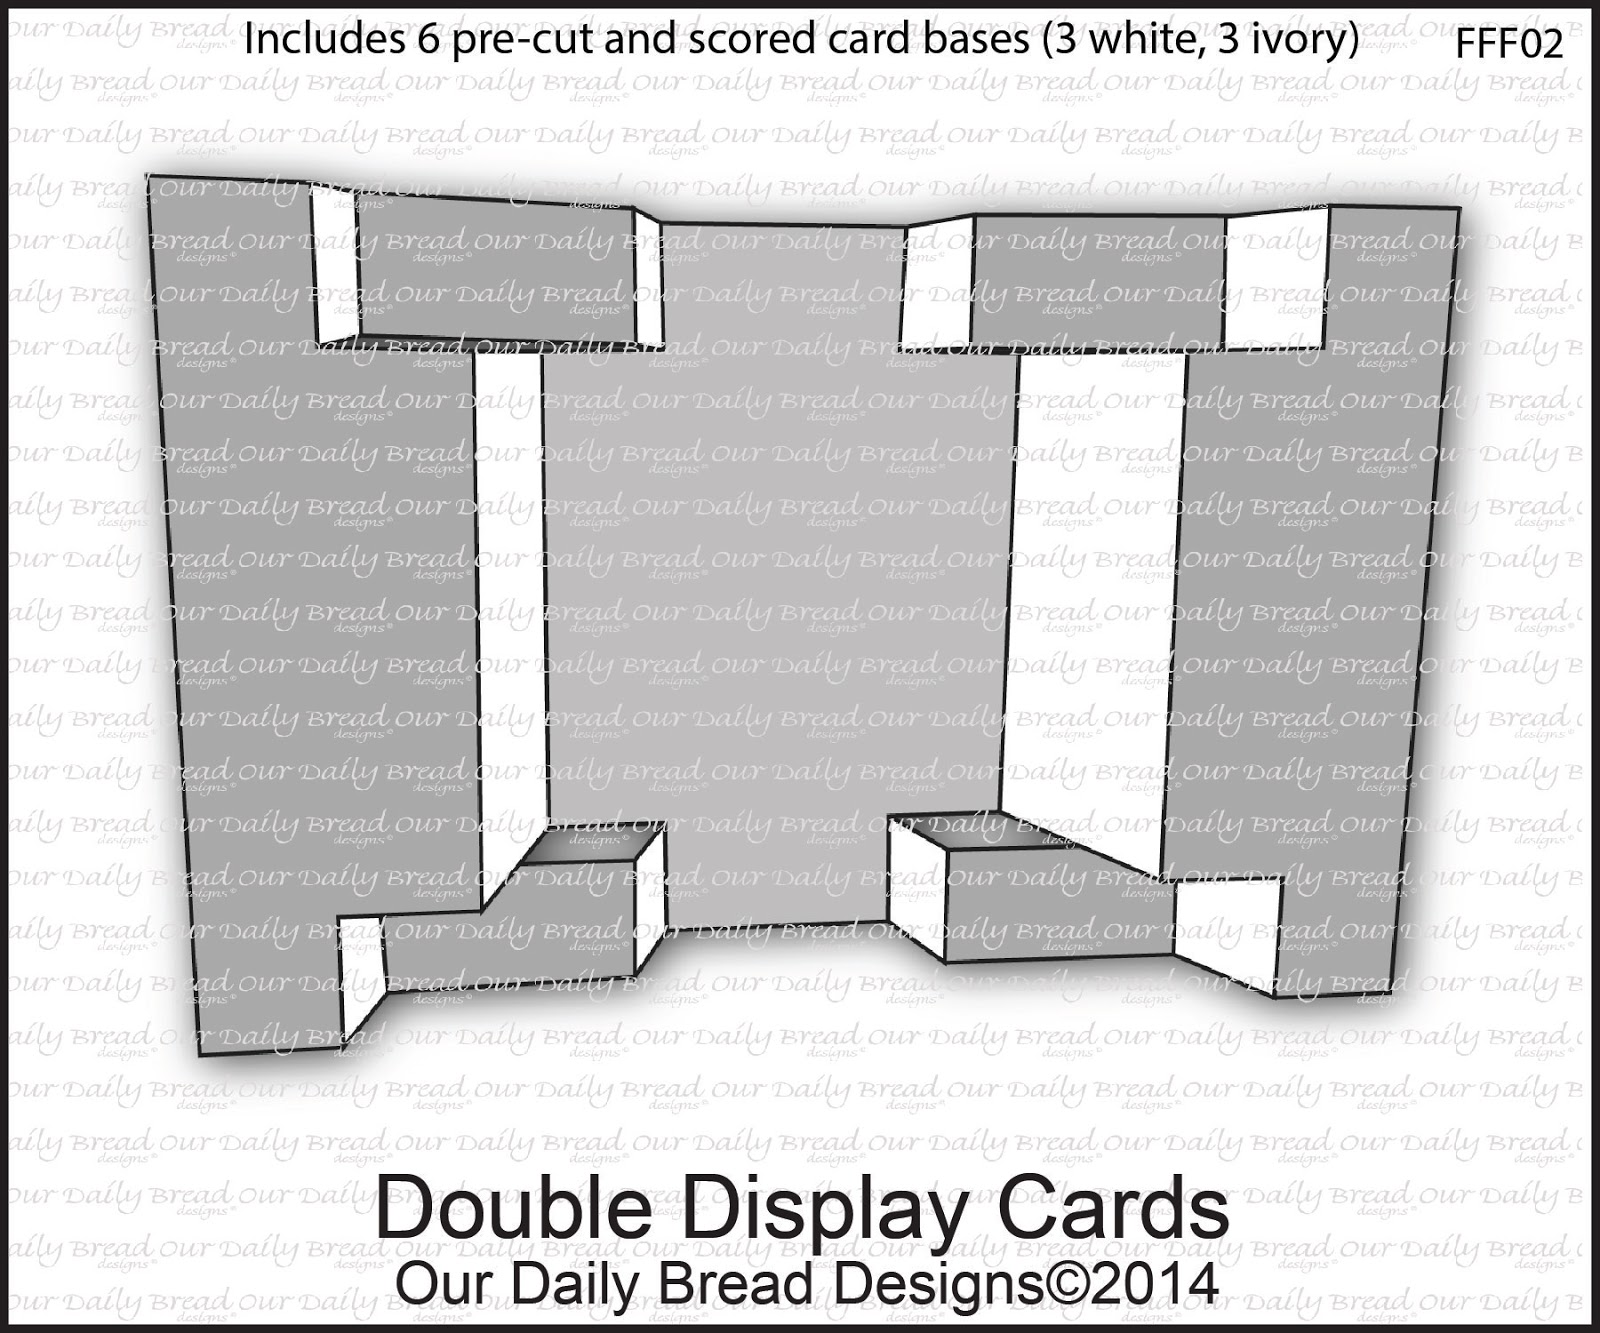 Our Daily Bread Designs Double Display Cards  - Includes 6 pre-cut and scored card bases (3 White, 3 Ivory)